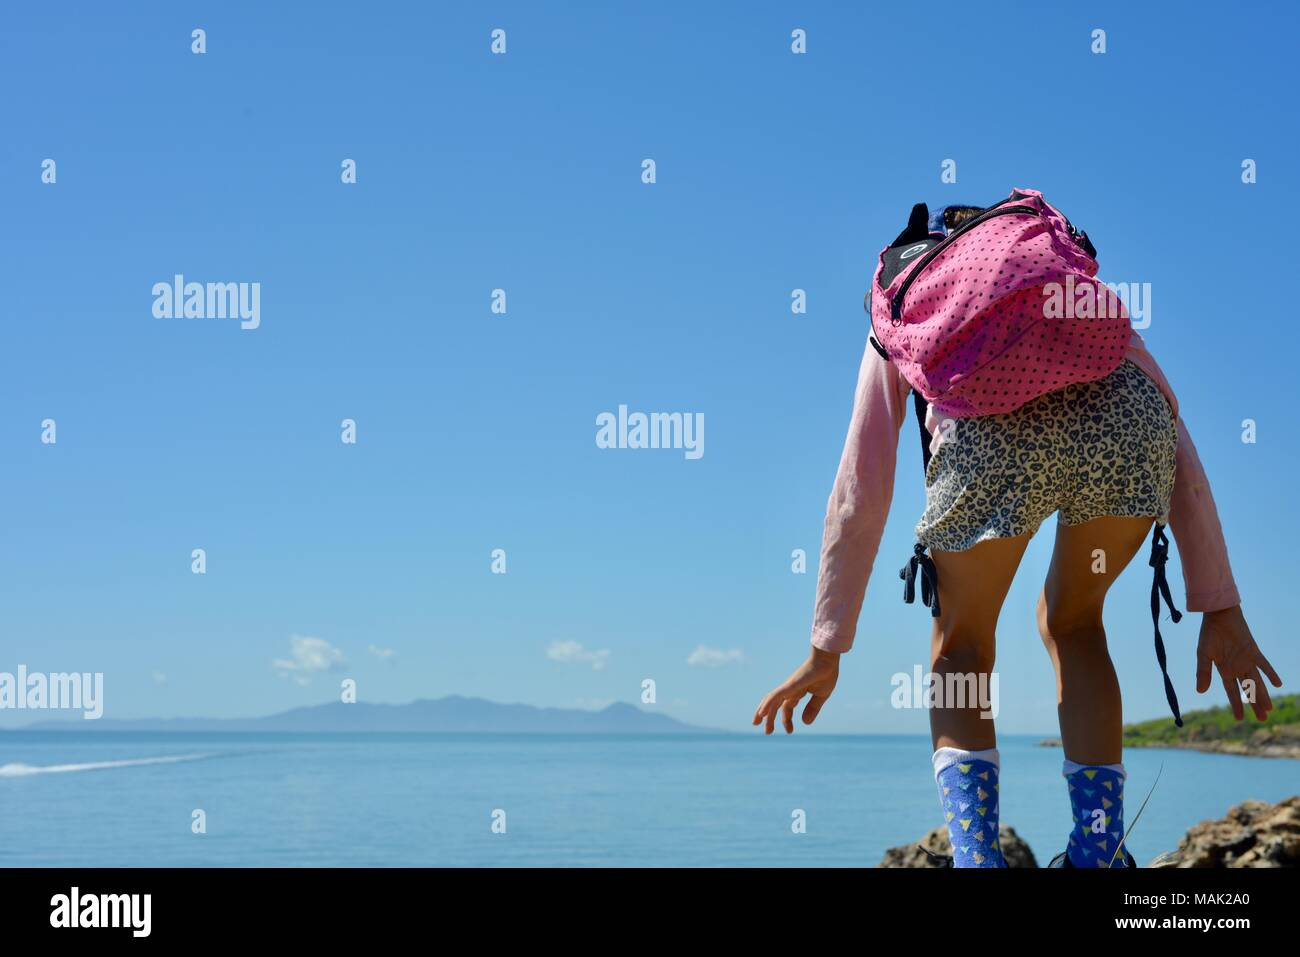 Young girl stands on top of the world getting her balance, Shelly Cove trail at Cape Pallarenda Conservation Park Queensland Australia - Stock Image